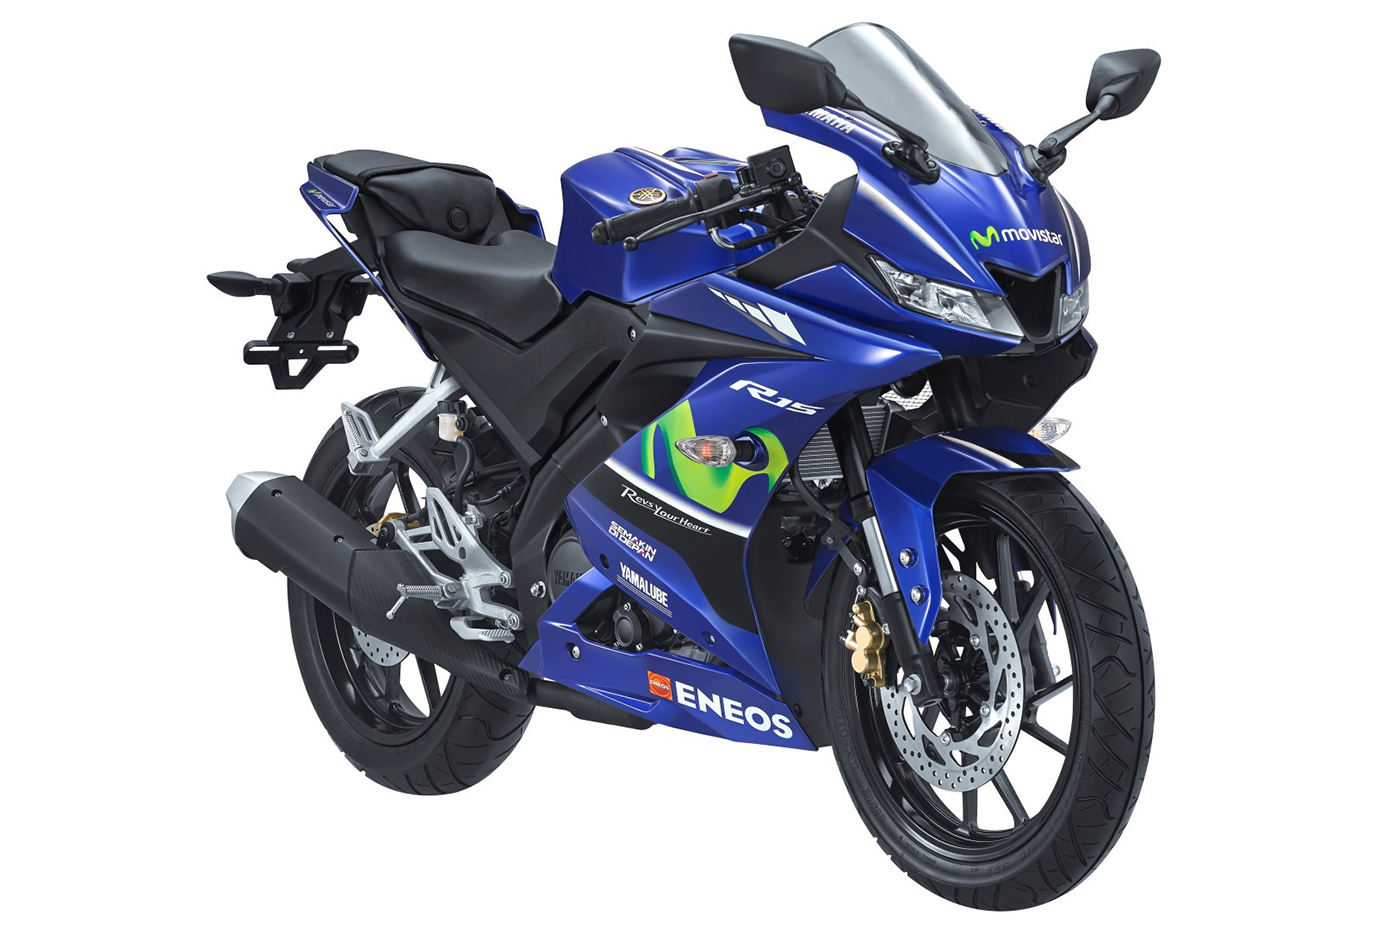 Yamaha R15 V3 Price Philippines Of Yamaha R15 V3 0 V Nvx 155 C Th M B N Movistar